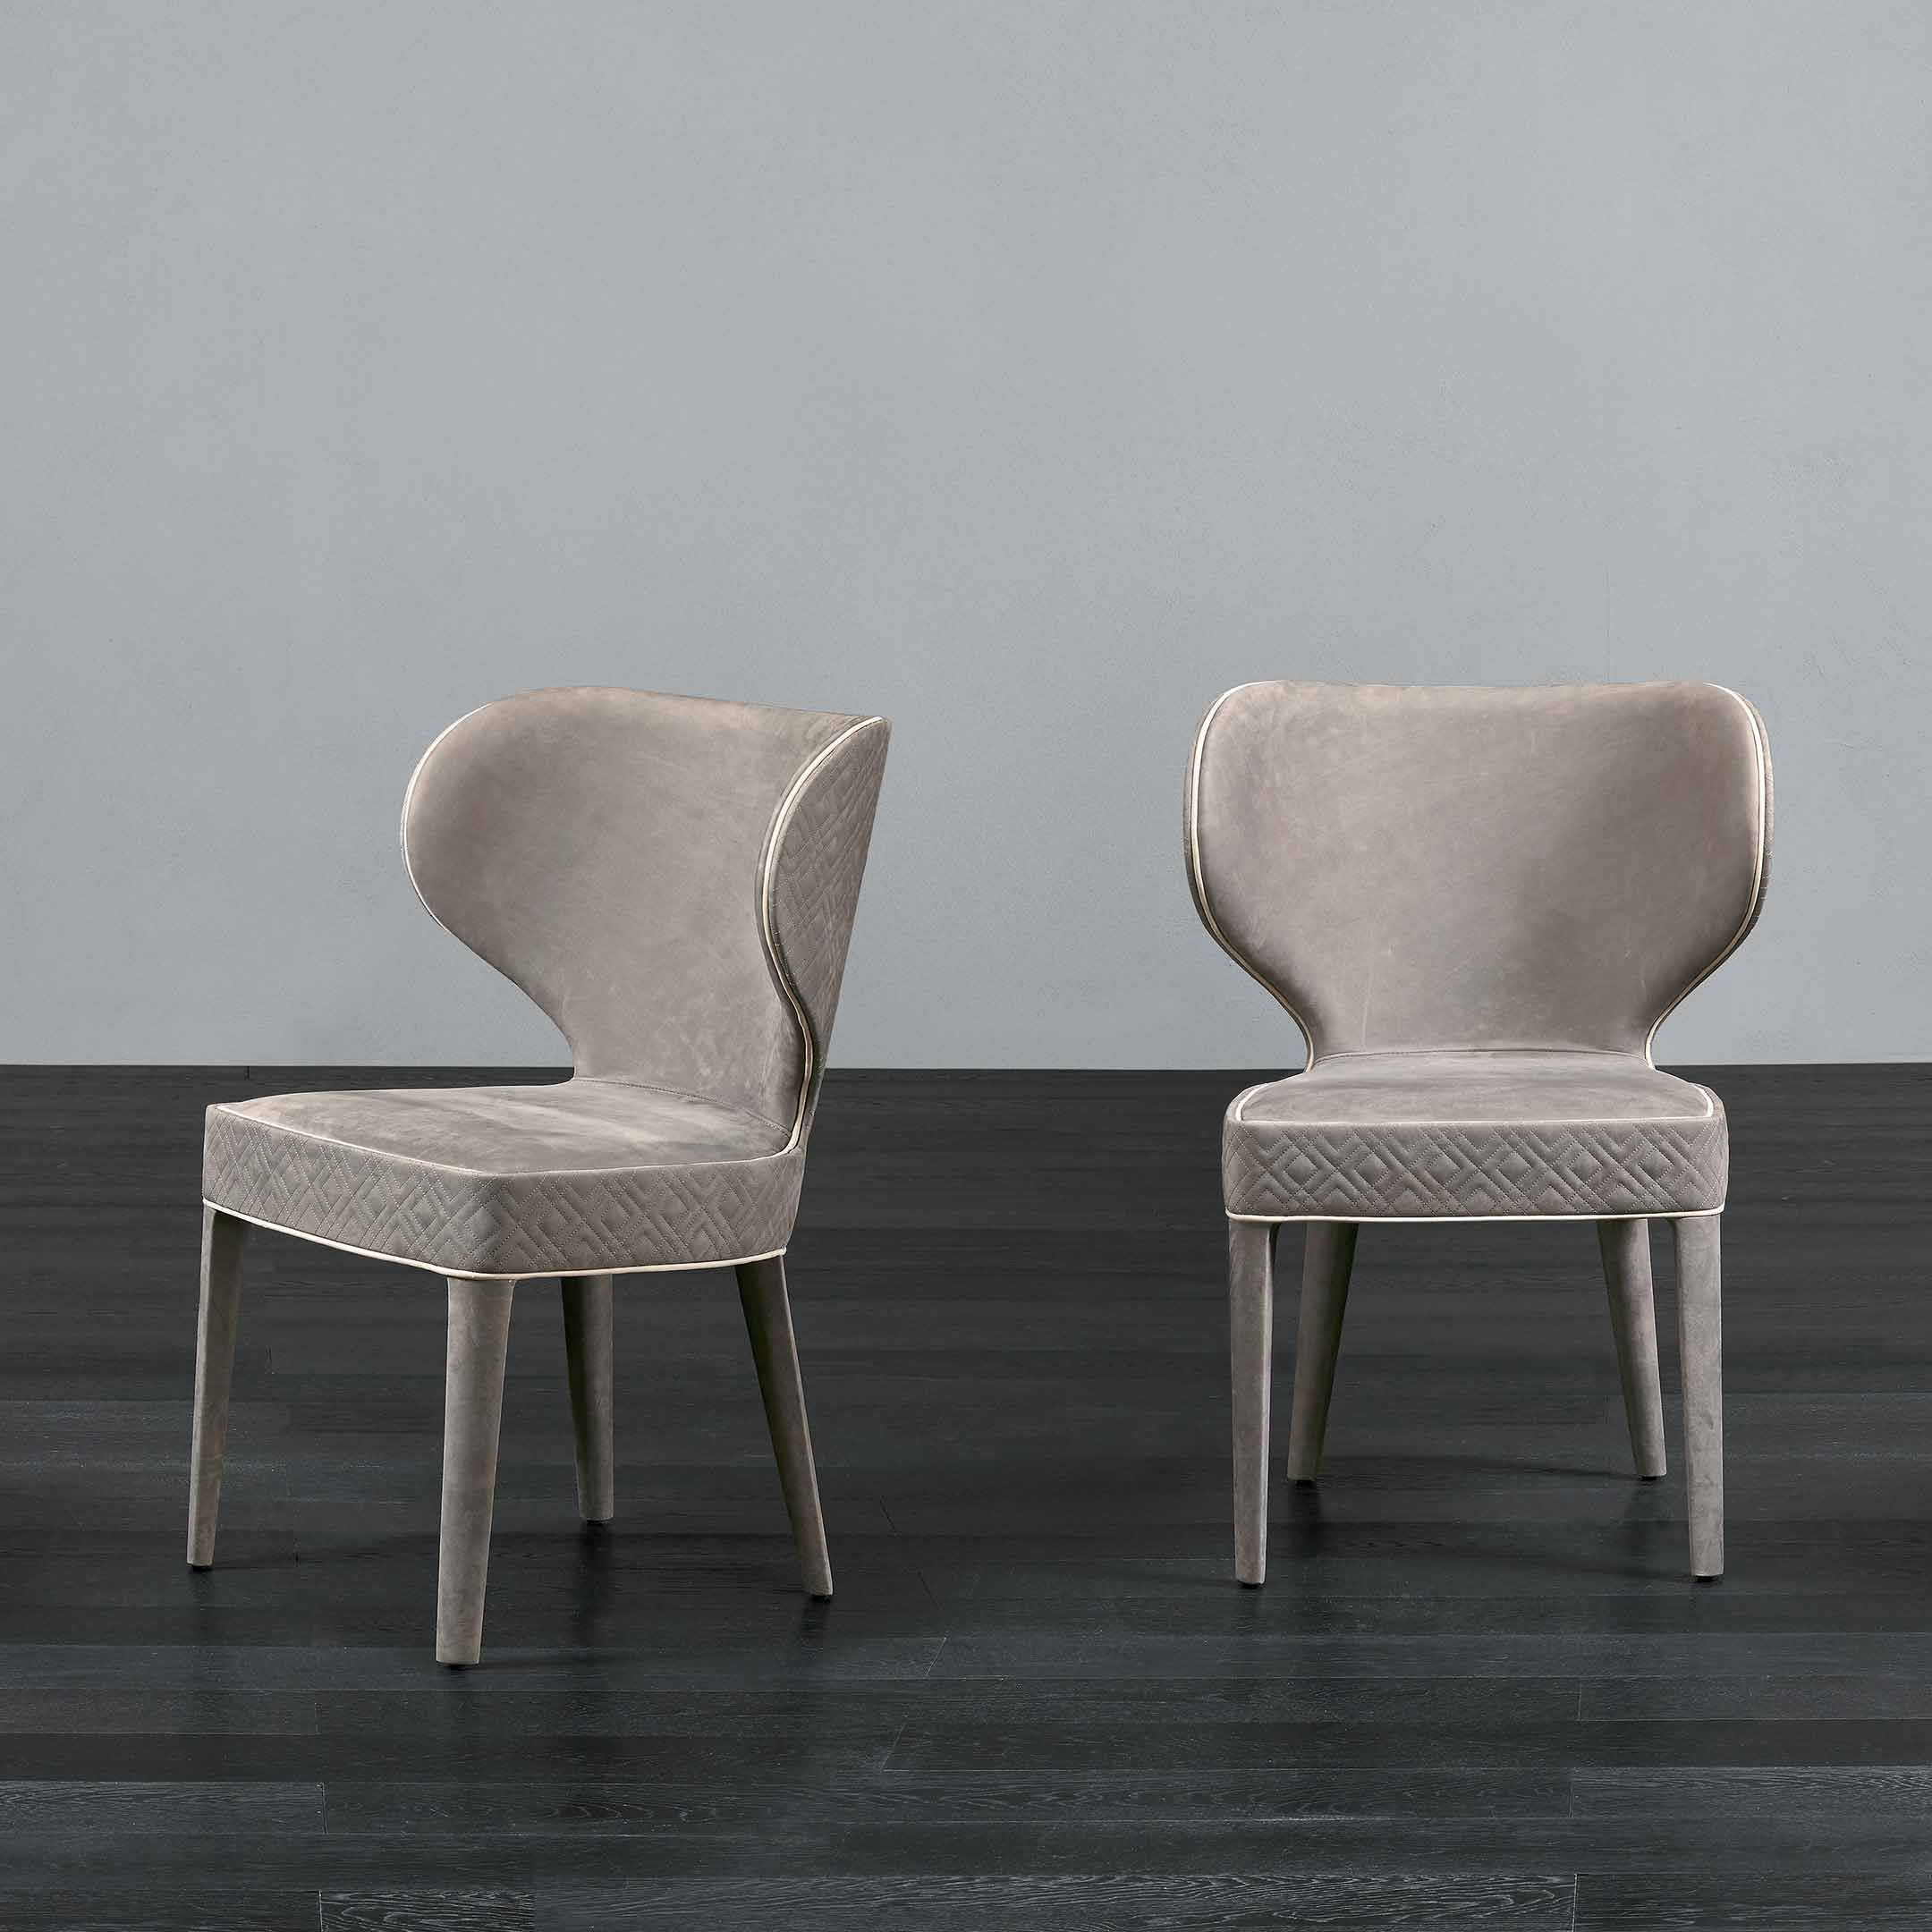 Rugiano In 2020 | Luxury Furniture, Furniture, Dining Chairs Throughout Aime Upholstered Parsons Chairs In Beige (View 10 of 15)